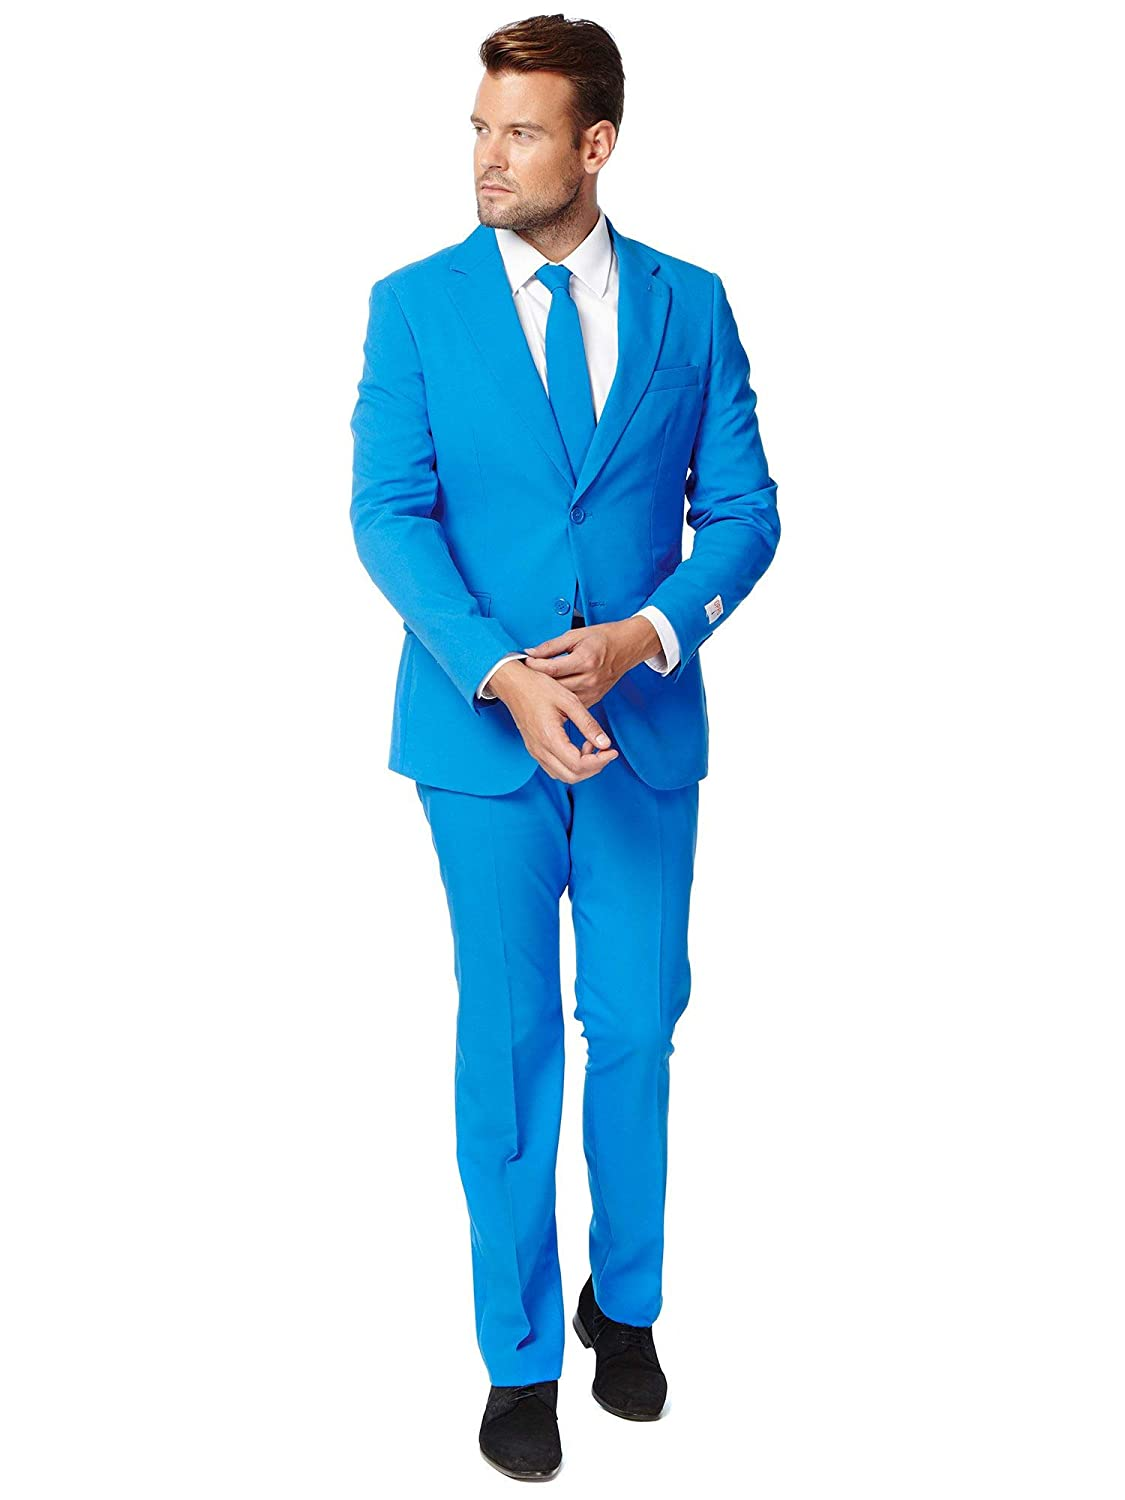 738bccfd6214 Opposuits Men's The Orange Party Costume Suit: Amazon.ca: Clothing &  Accessories